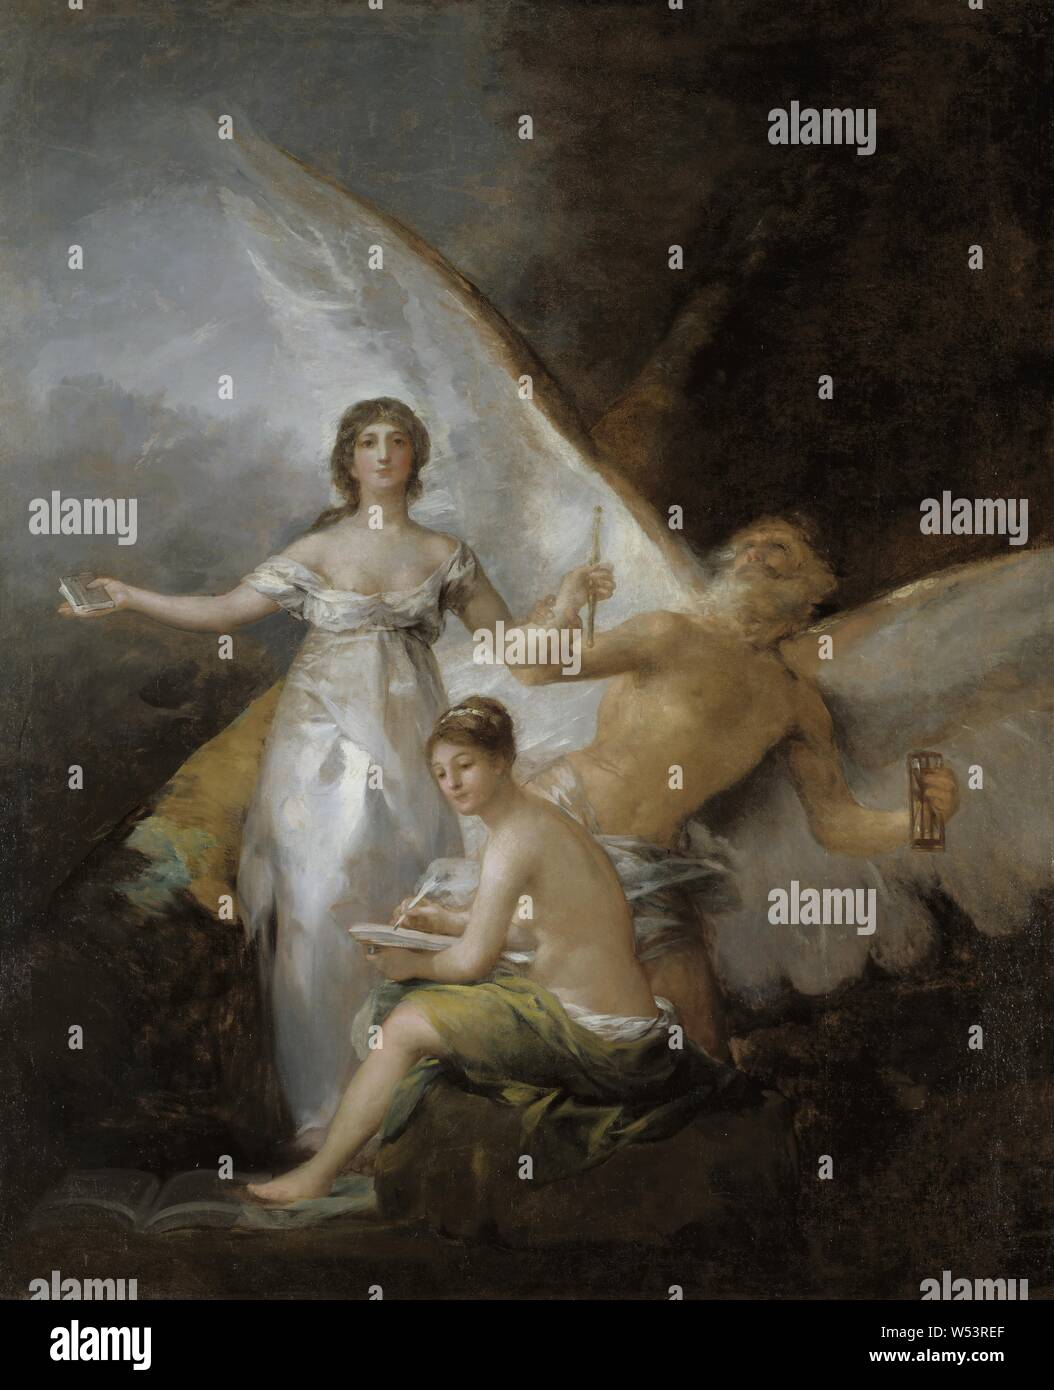 Francisco Goya, Truth, Time and History, painting, allegory, Oil on canvas, Height, 294 cm (115.7 inches), Width, 244 cm (96 inches) Stock Photo